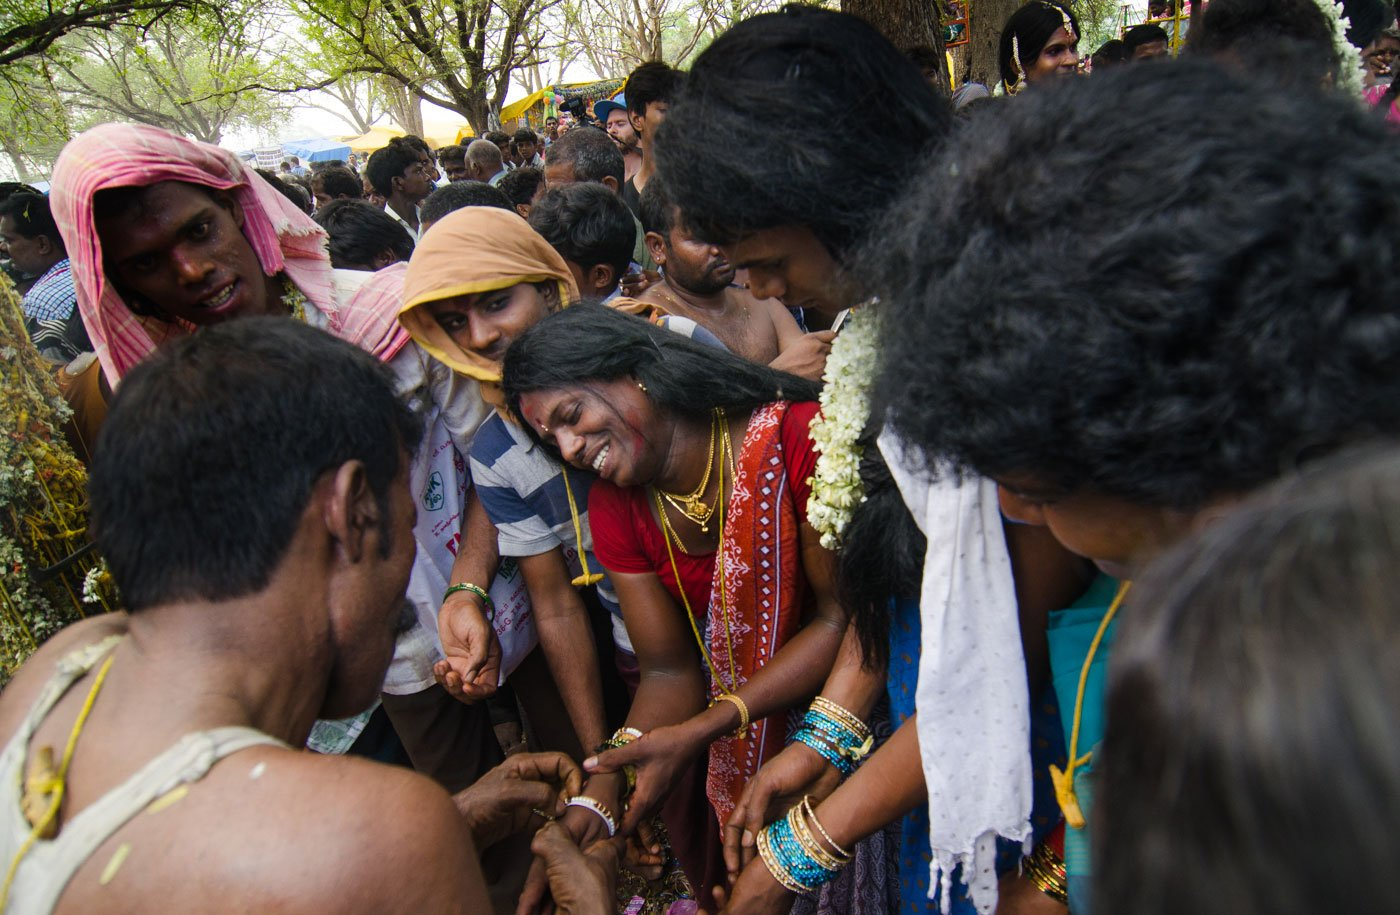 A priest breaks an aravani's bangles – one of the rituals of widowhood. Visibly distraught, she begins to sob.  Many visitors stand around watching the rituals